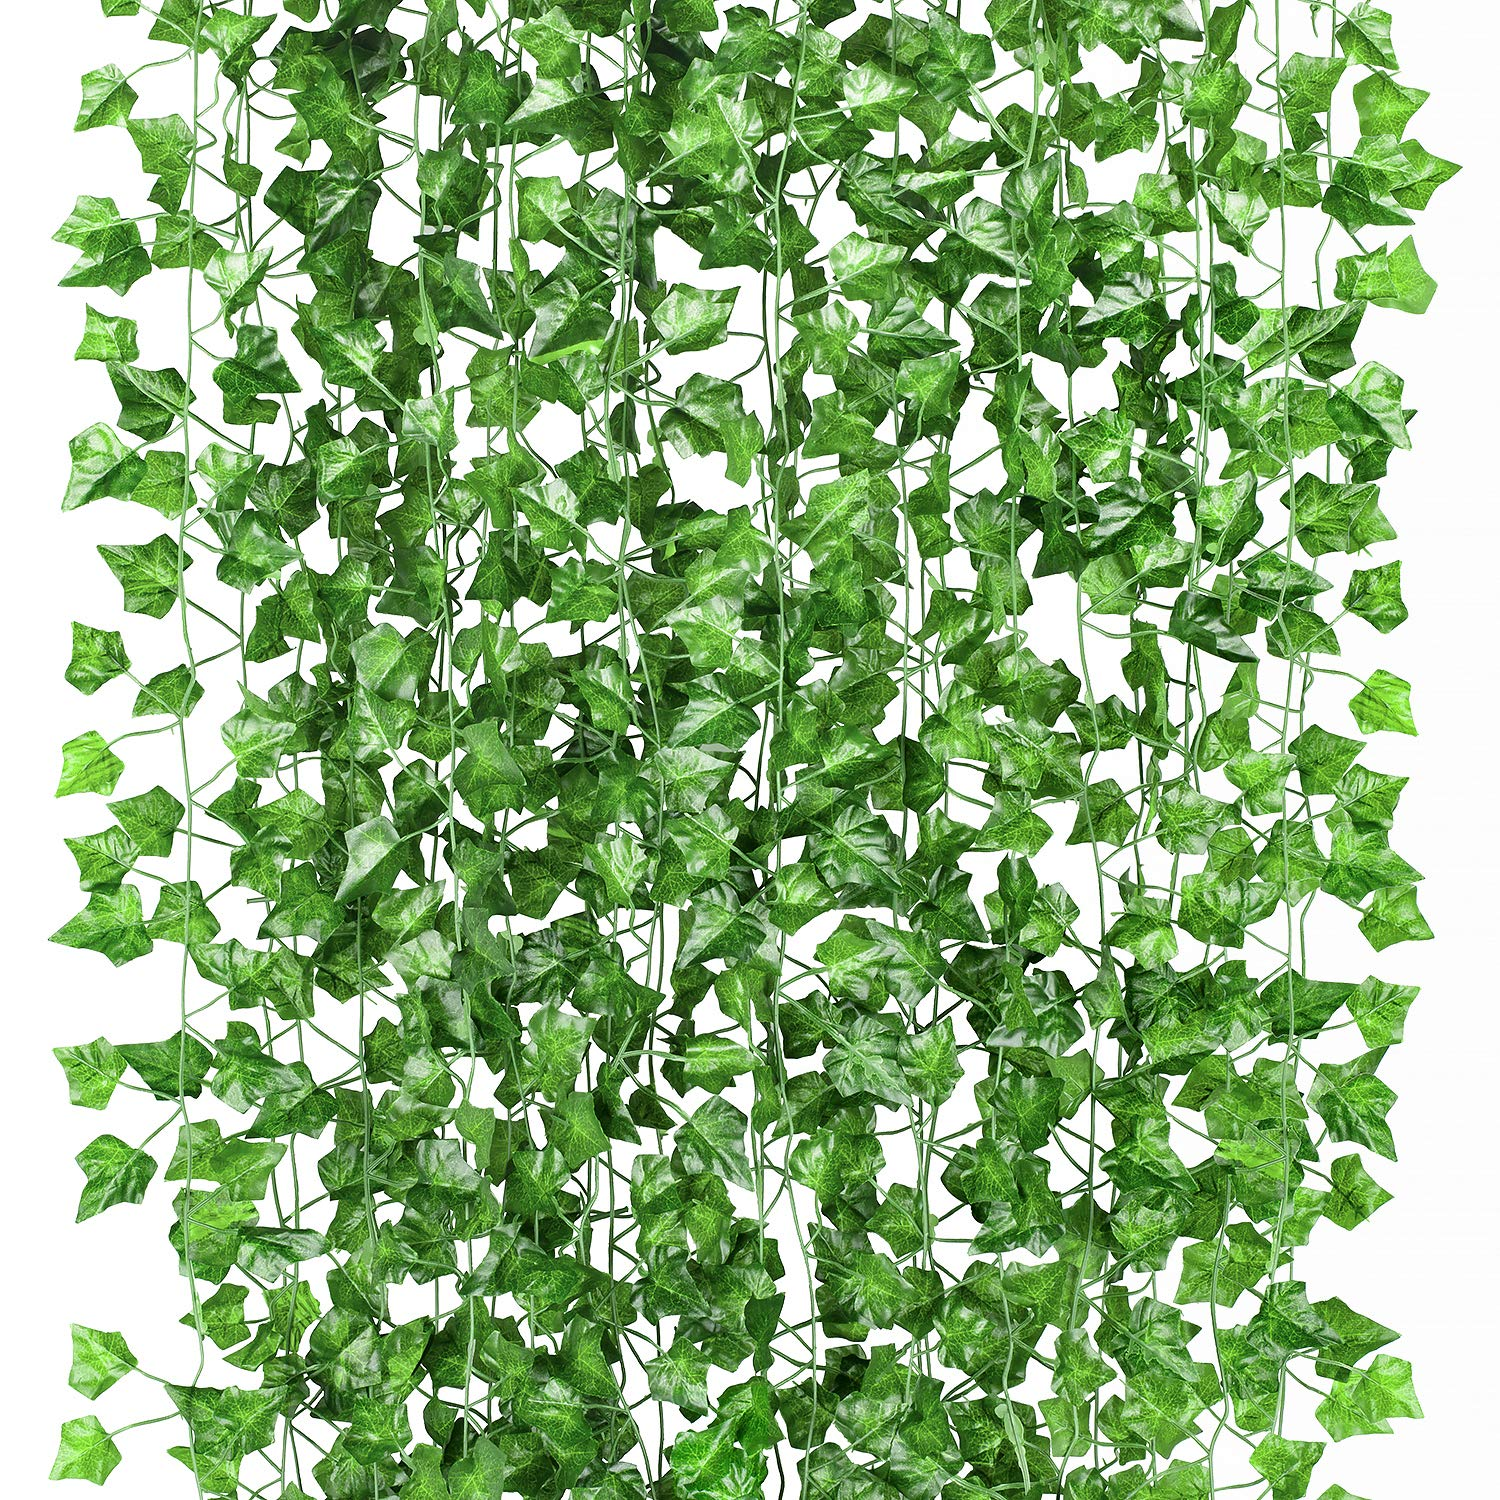 GPARK 12 Pack / Each 82 inch, Artificial Ivy Garland Fake Leaf Plants Vine , Flowers Hanging for Wedding Party Home Garden Kitchen Office Outdoor Greenery Wall Decor Green